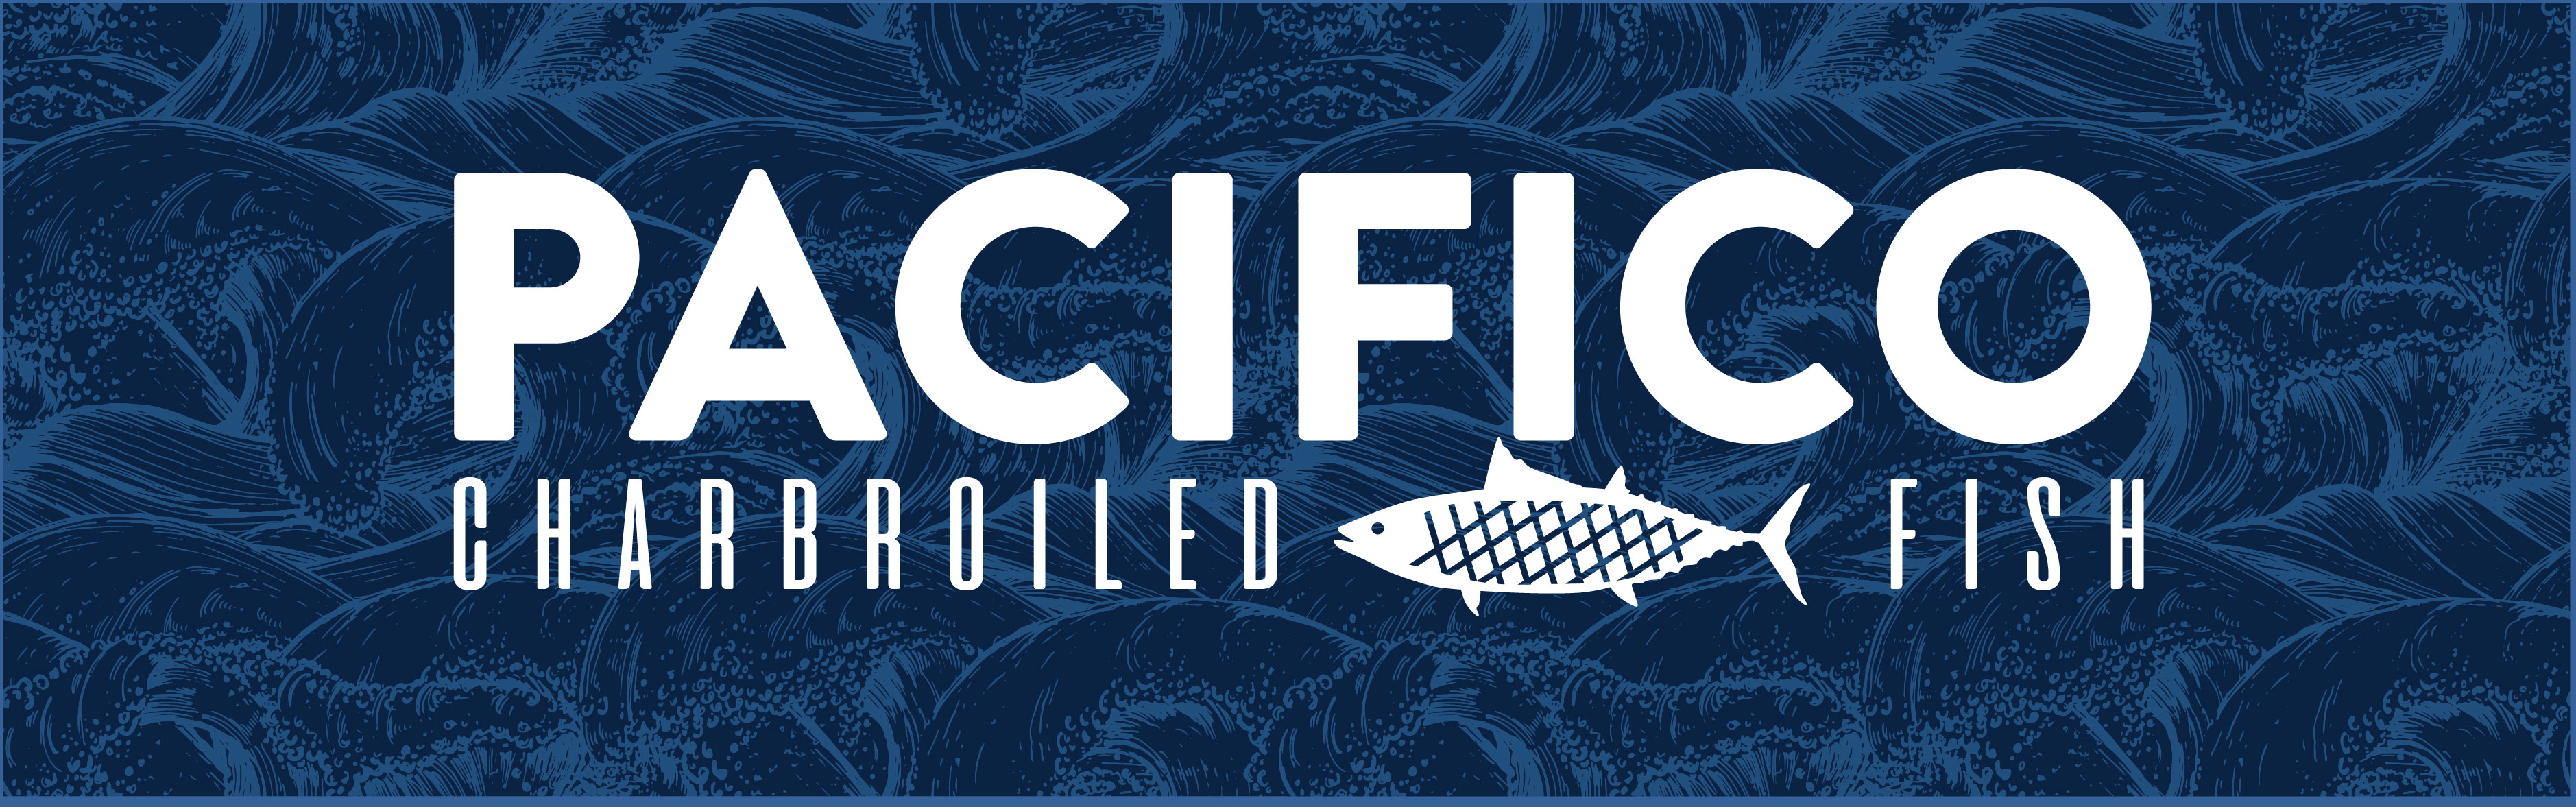 Pacifico Charbroiled Fish